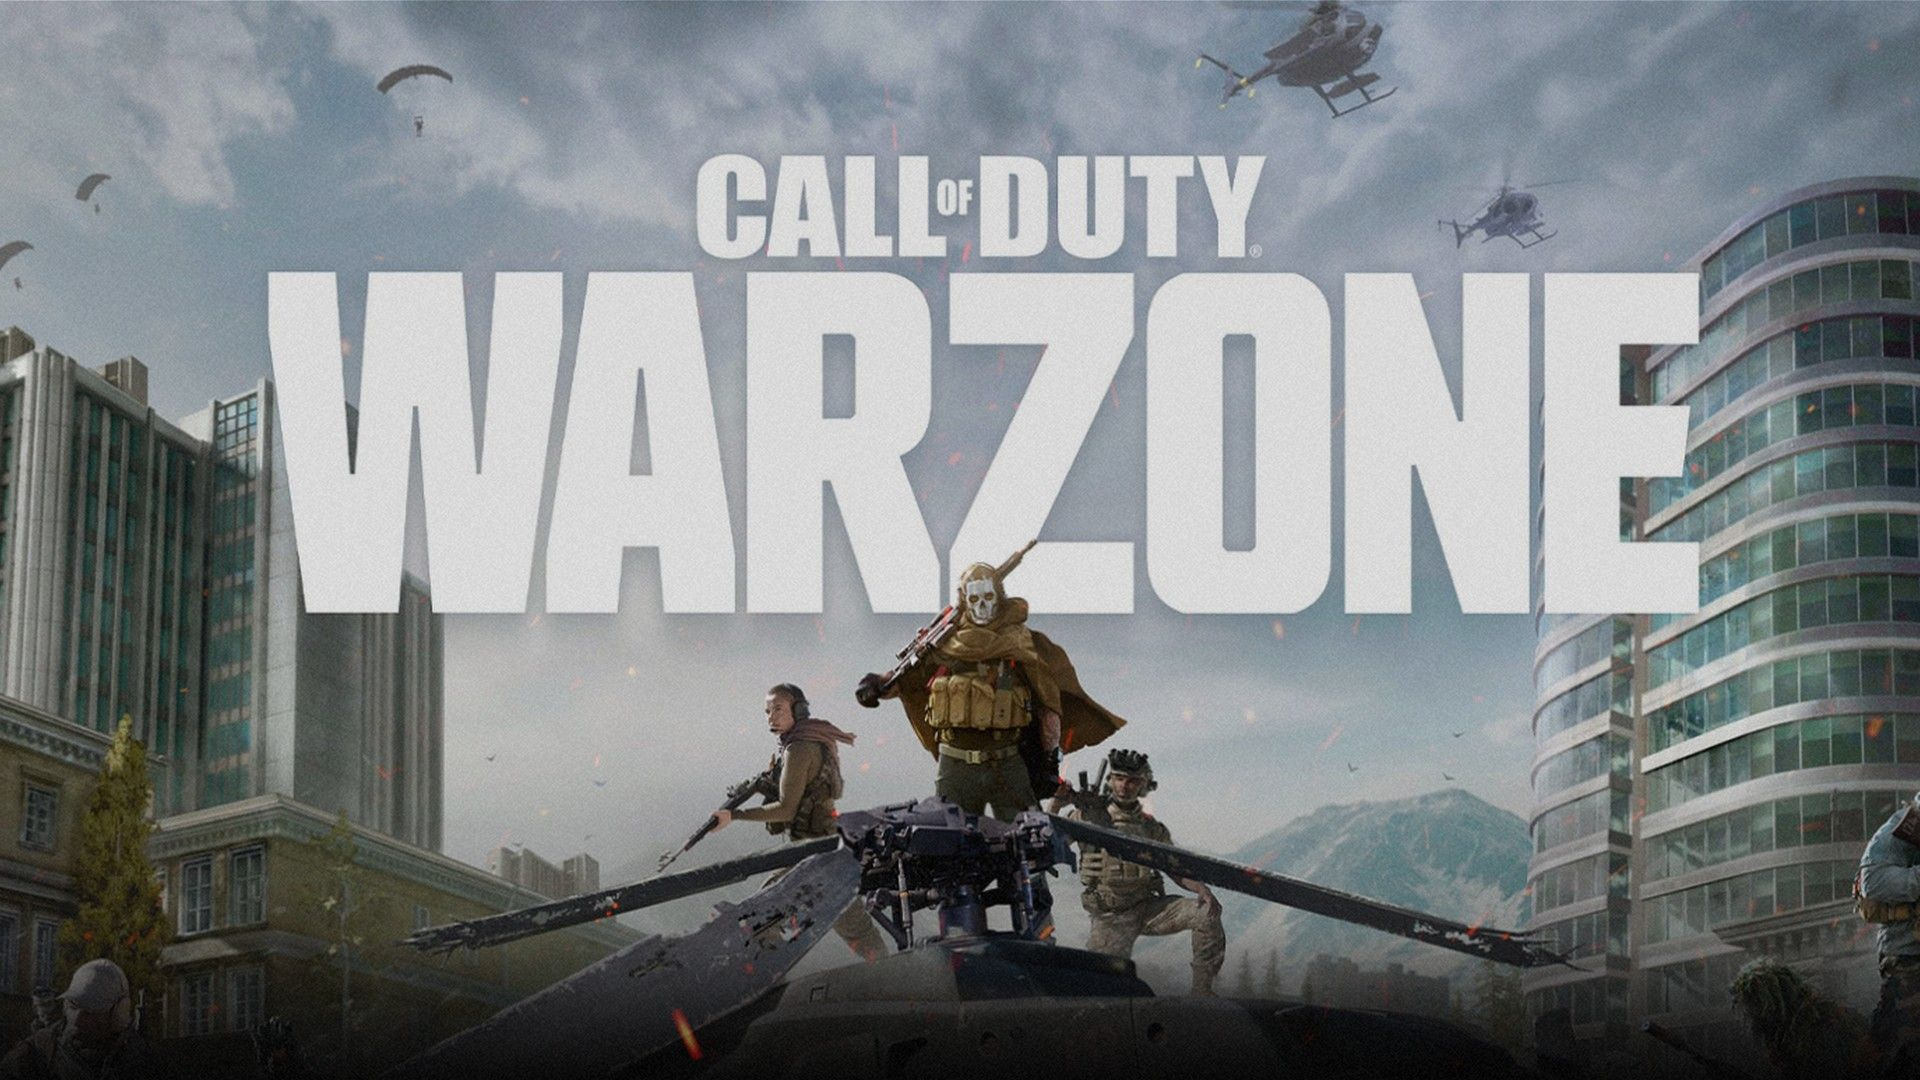 Call Of Duty Warzone Wallpapers Wallpaper Cave